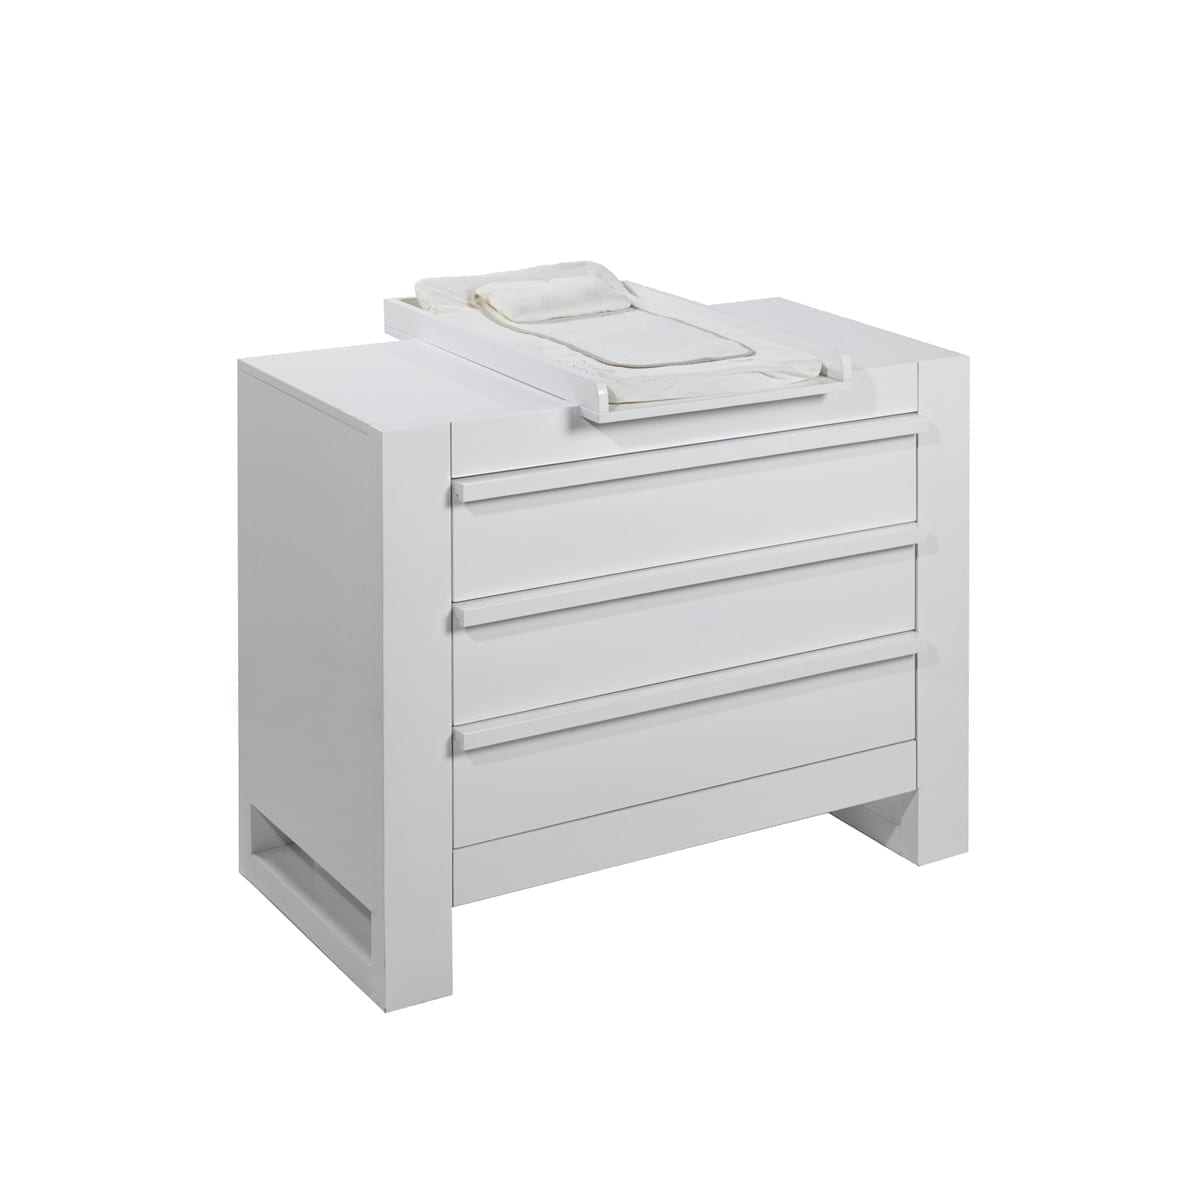 Tutti Bambini Rimini Chest Changer - High Gloss White